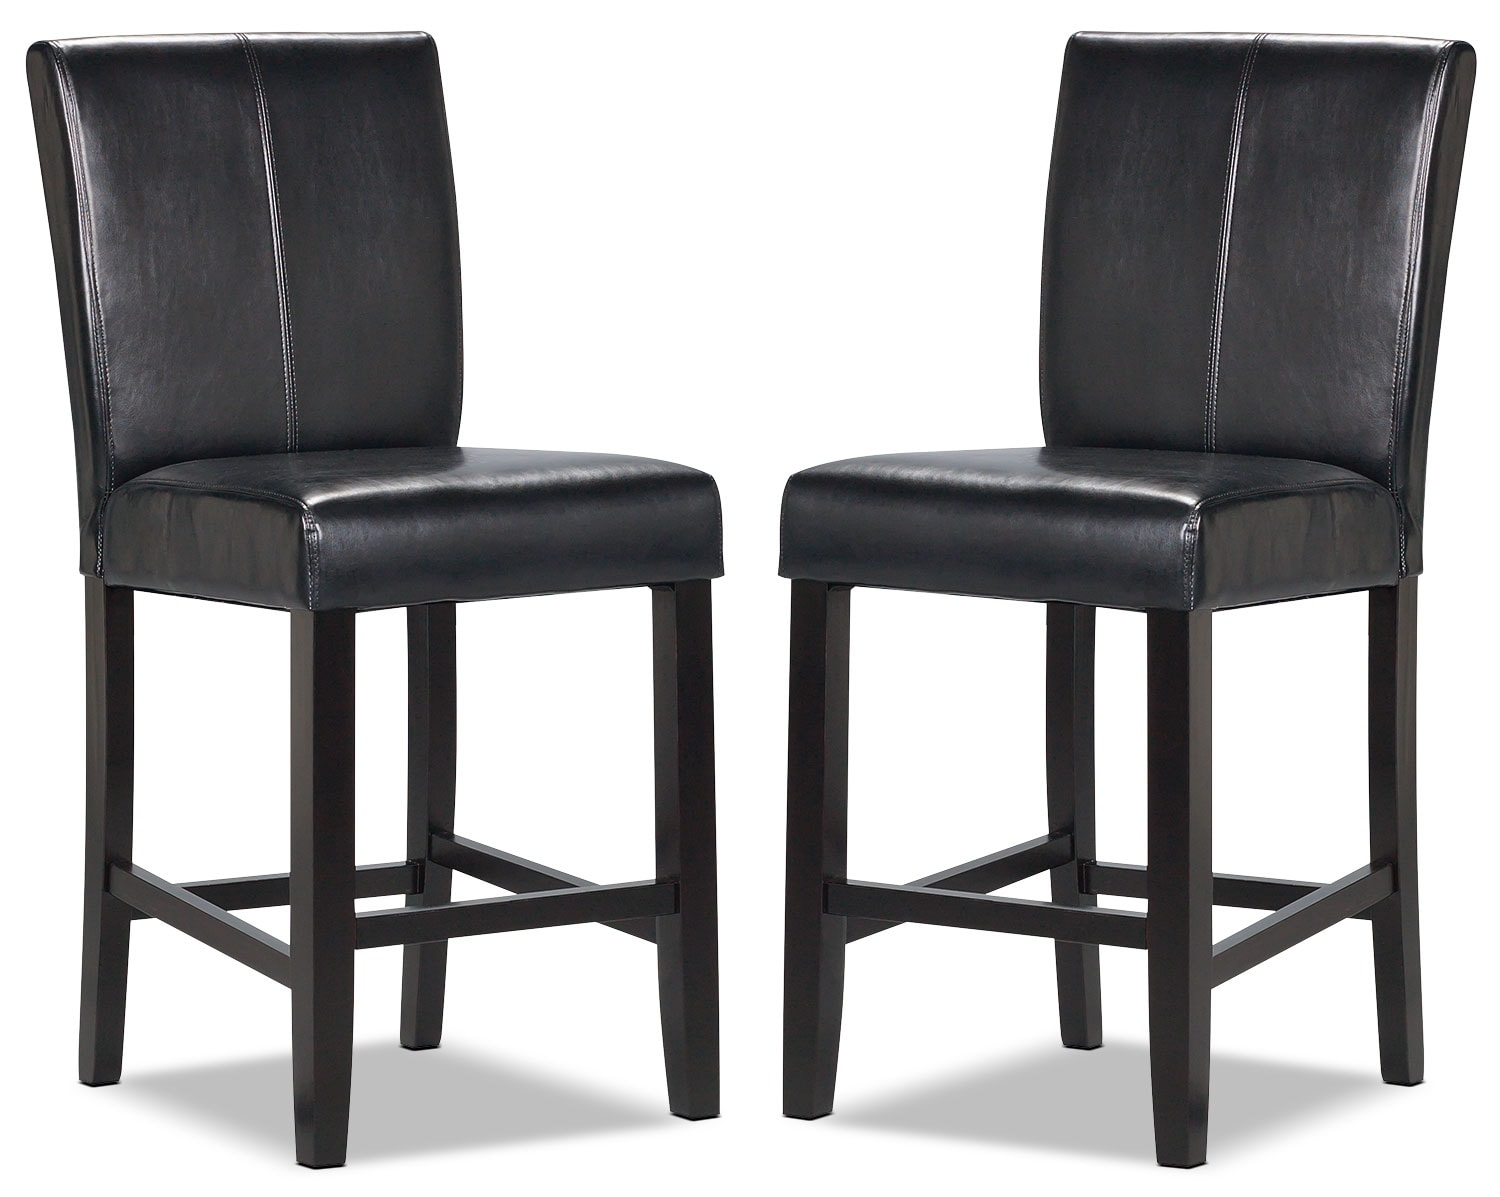 Kendall Black Accent Counter Chairs Set Of 2 The Brick